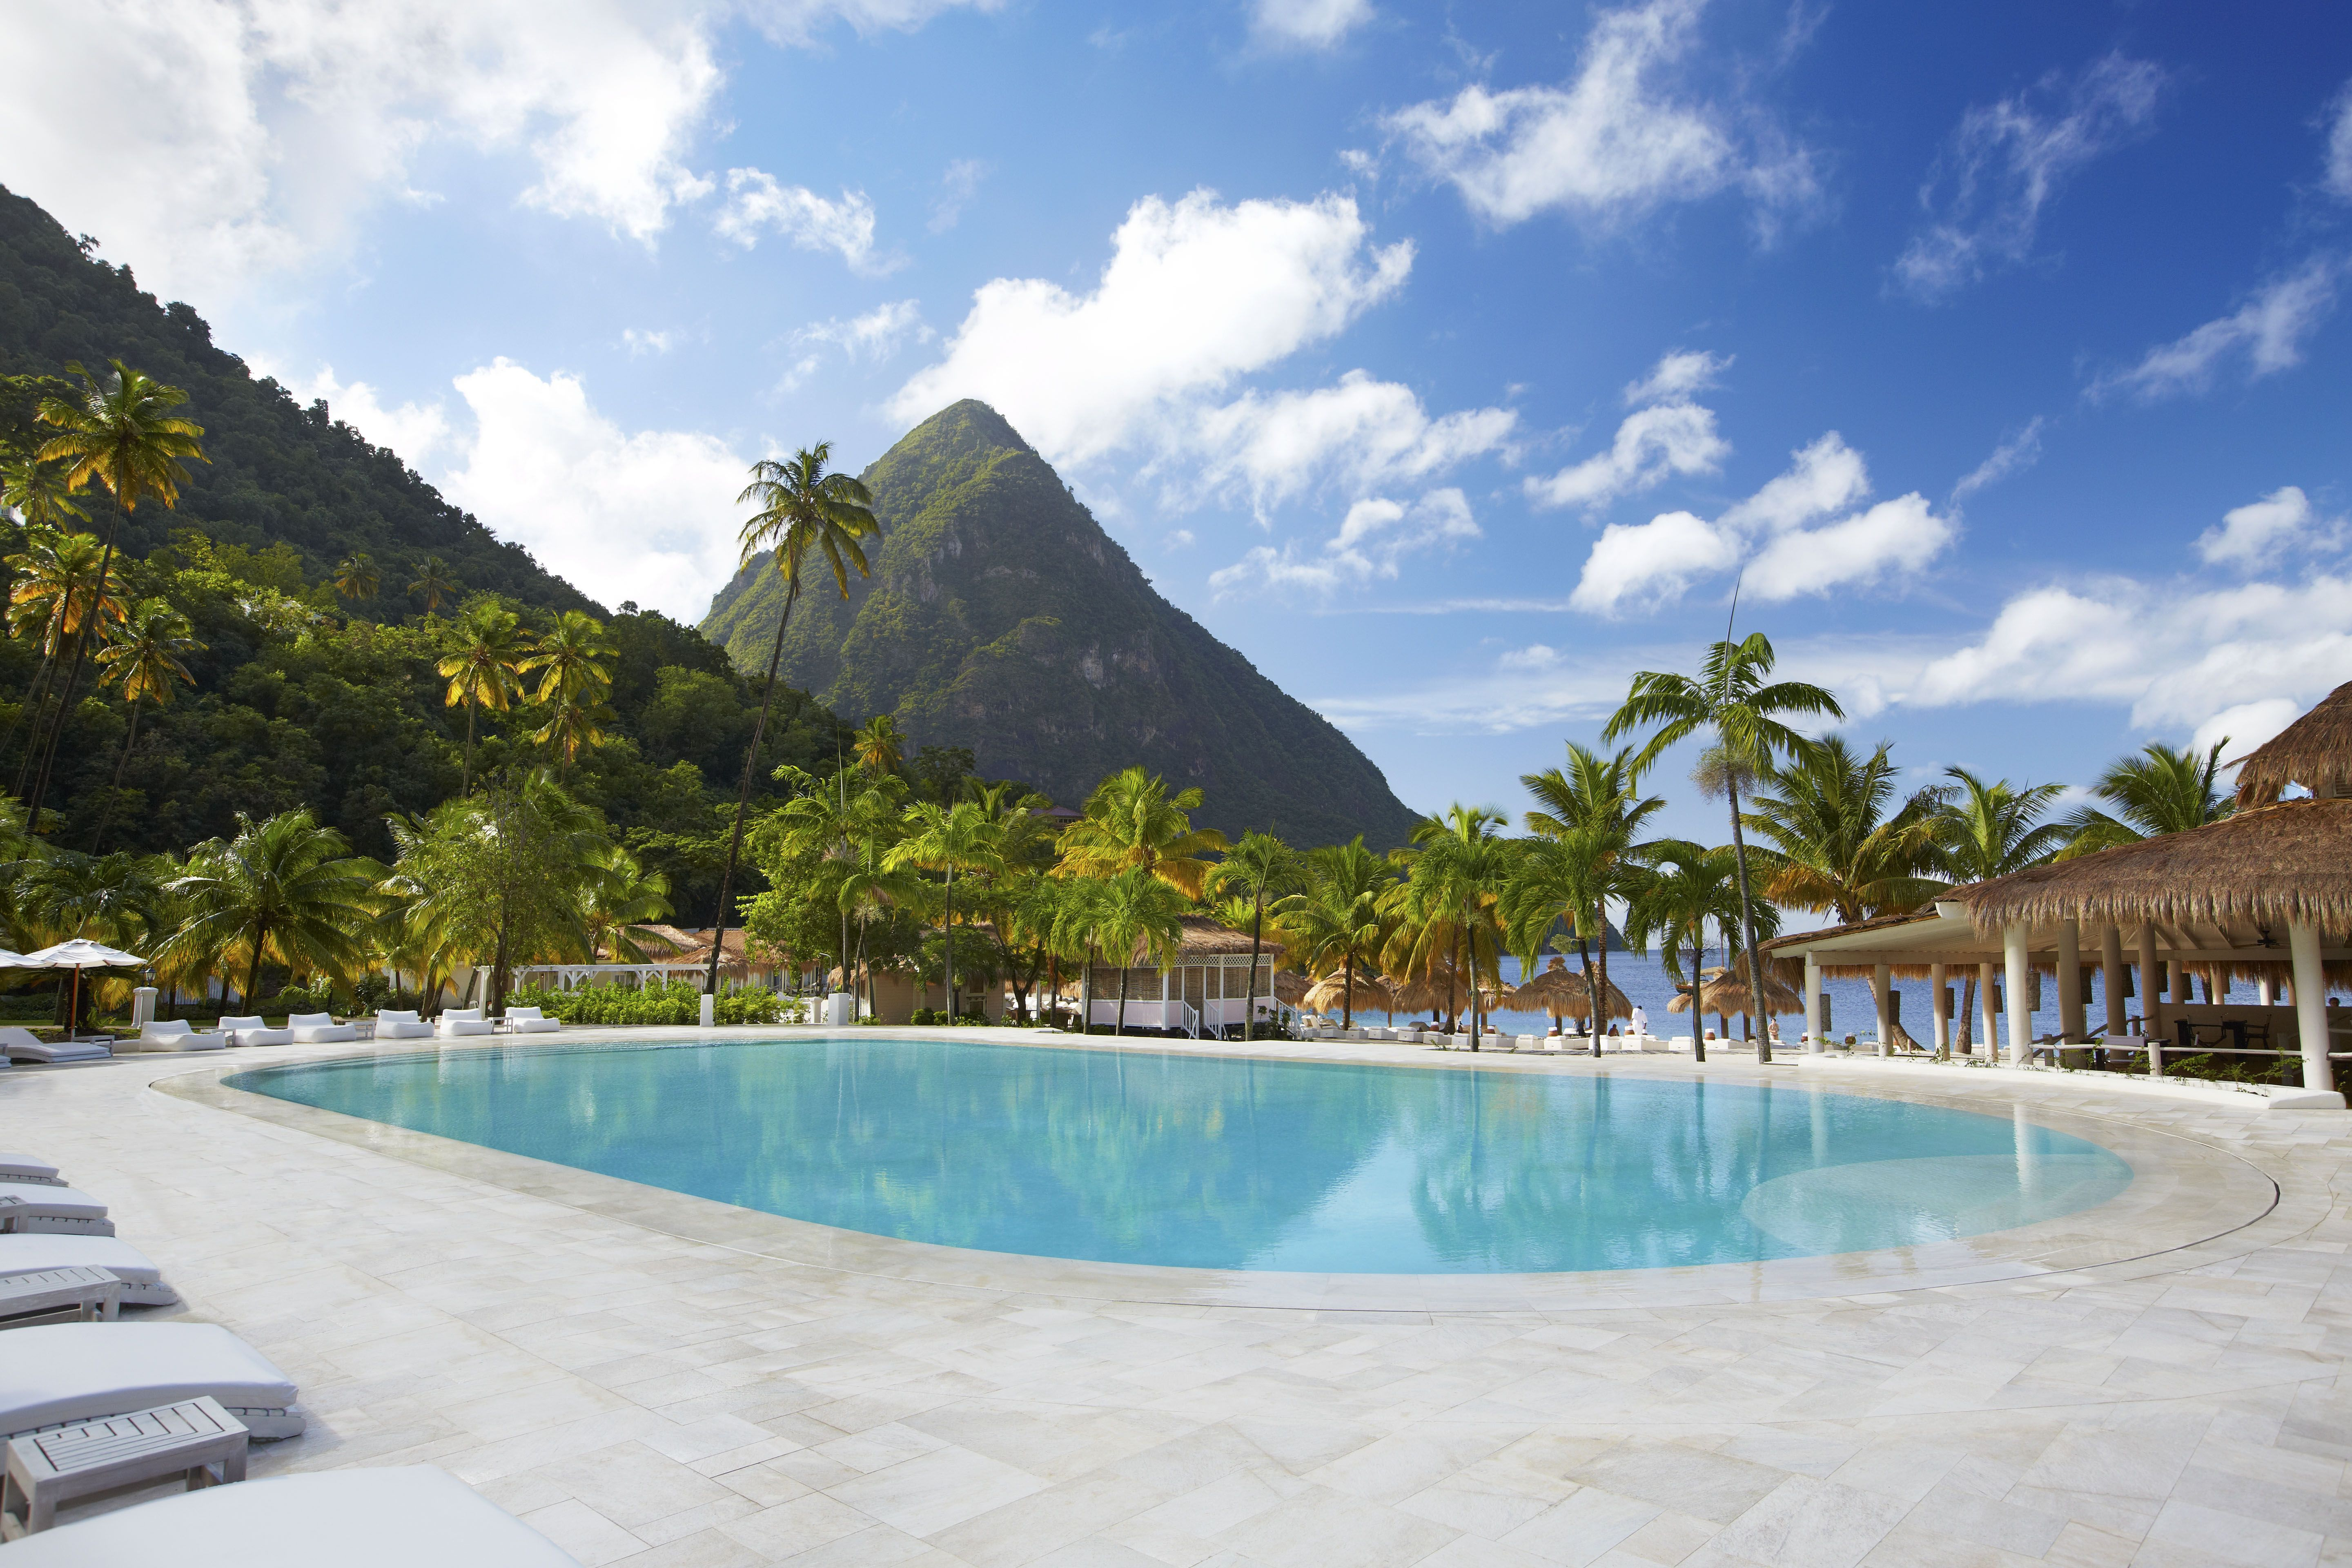 Sugar Beach A Viceroy Resort St Lucia Hotels Soufriere St Lucia Forbes Travel Guide Perfect Beach Vacation St Lucia Resorts Sugar Beach St Lucia